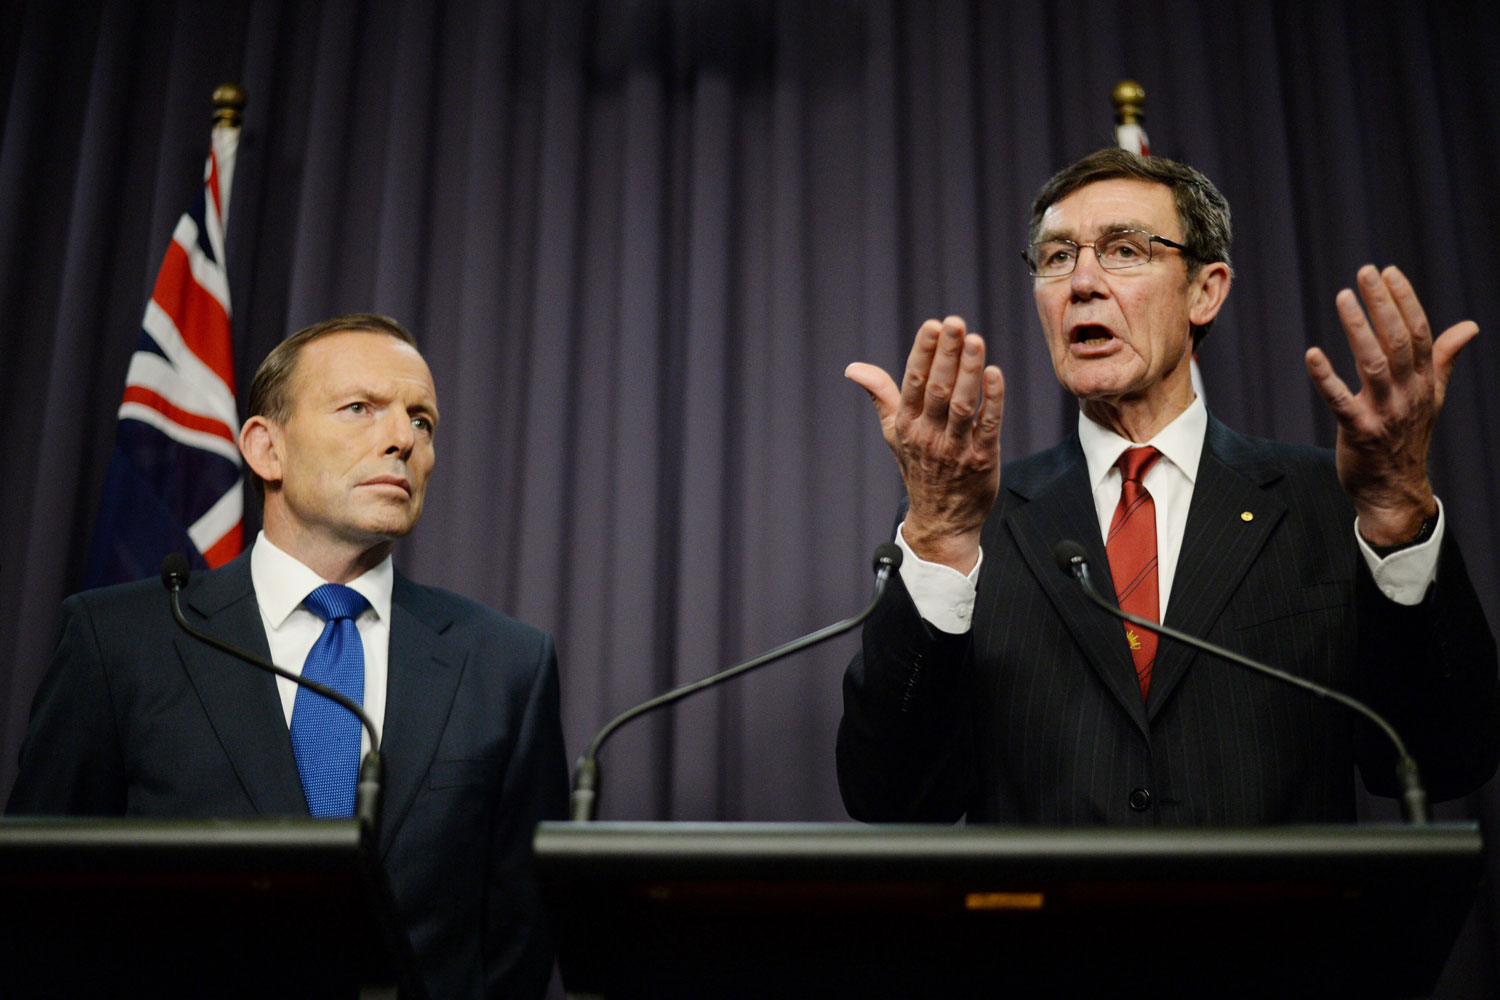 From left: Prime Minister Tony Abbott listens as Angus Houston, in charge of joint search efforts, speaks to the media during a press conference at Parliament House in Canberra on April 28, 2014.